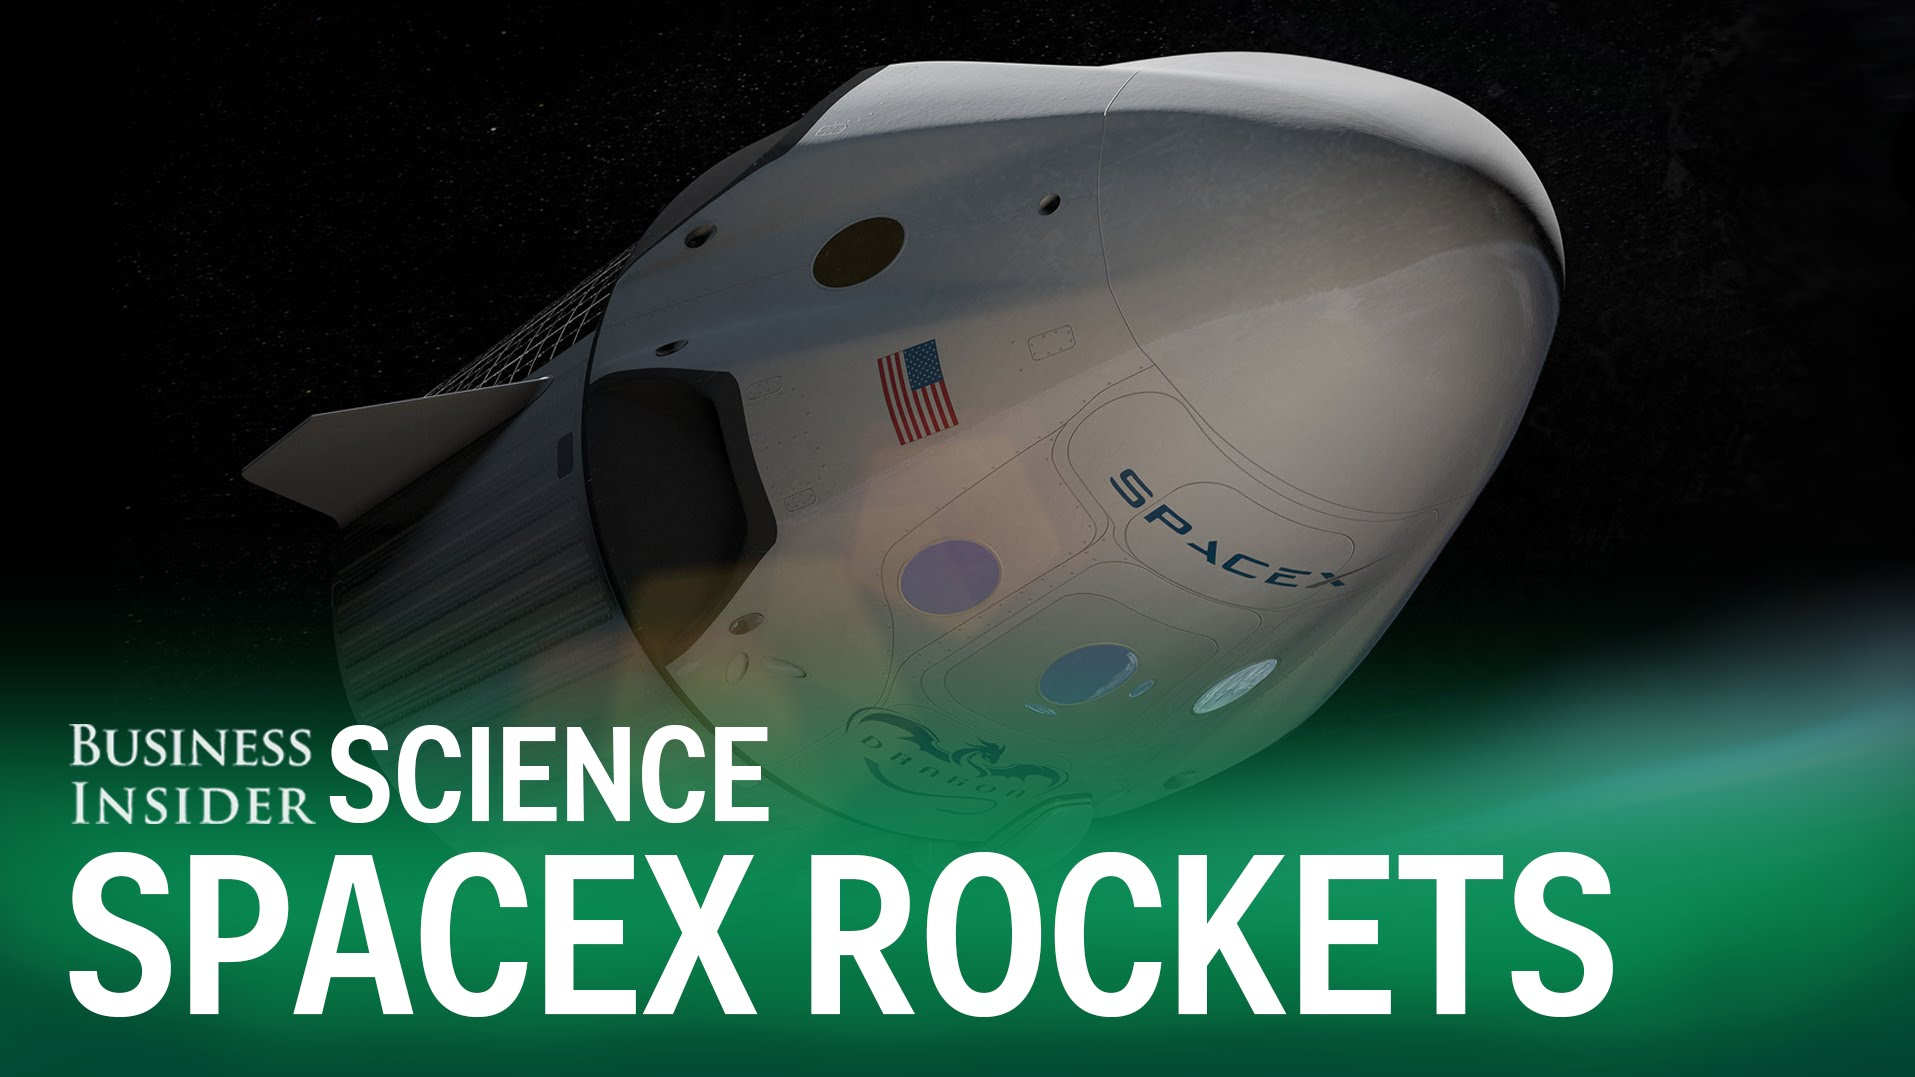 Spacex - Reusable Rocket